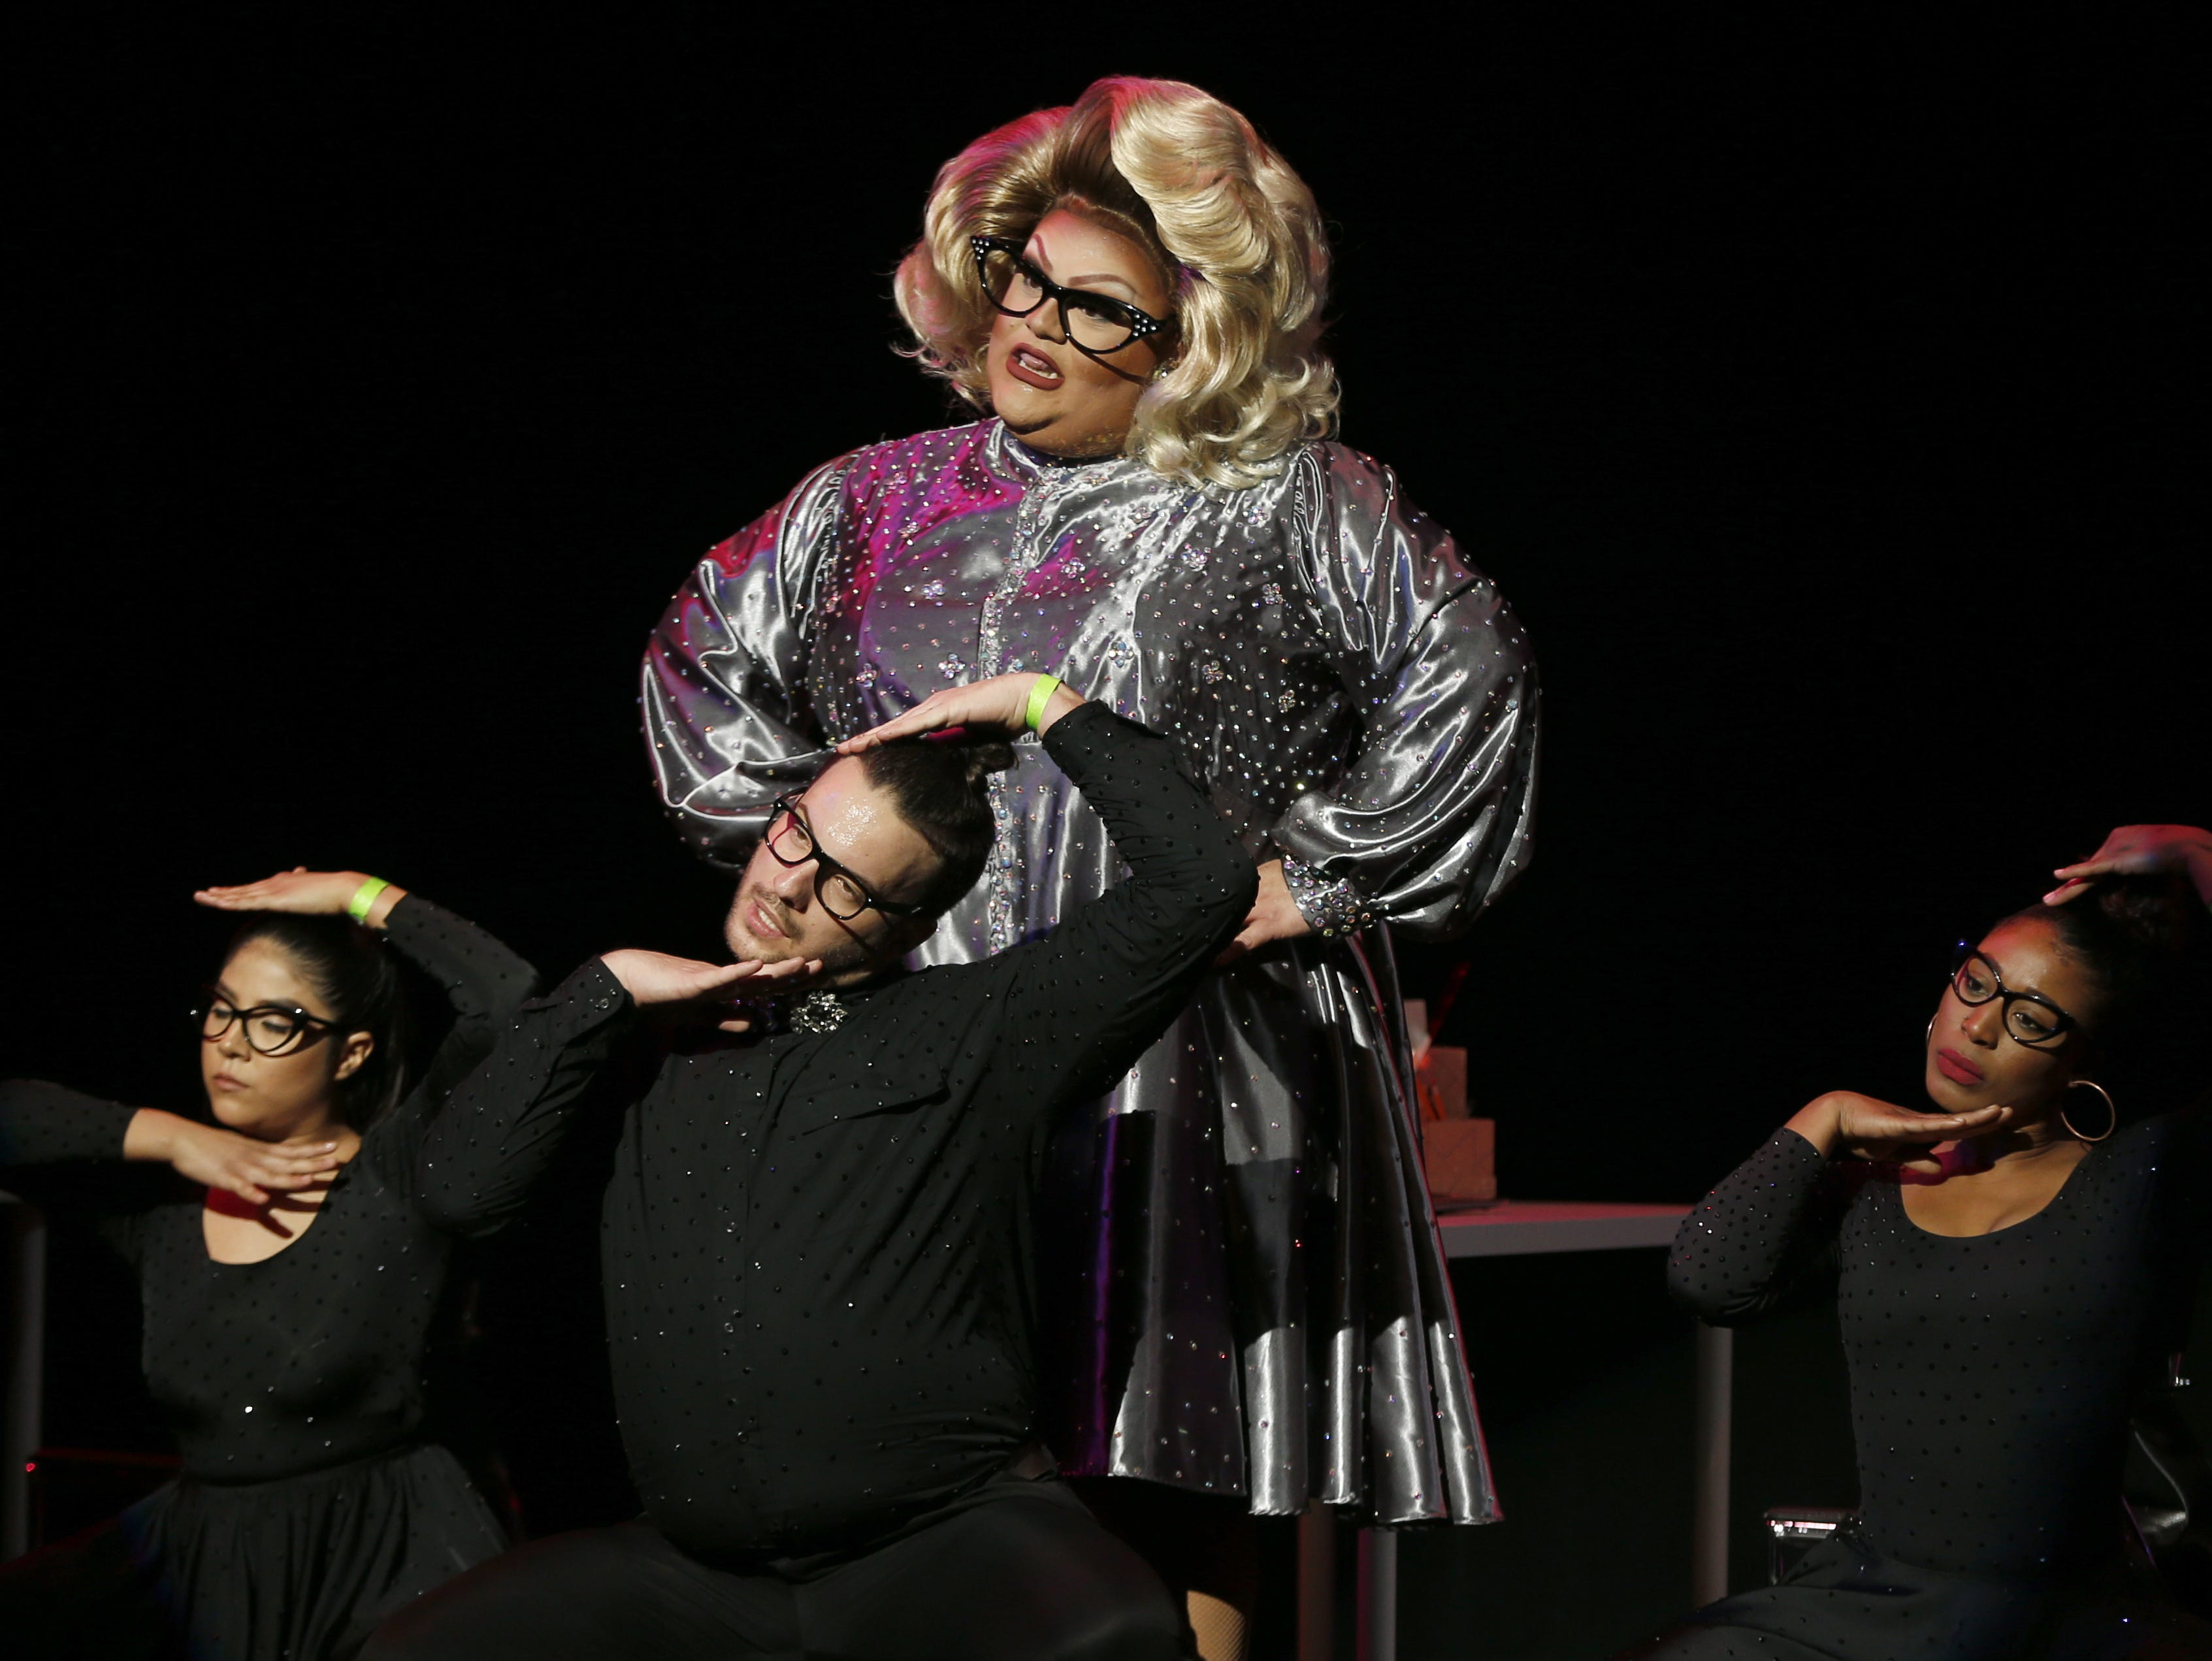 Espressa Grande performs during the talent section of the Miss Gay Arizona America pageant 2019 at Tempe Center for the Arts on May 11, 2019. Espressa Grande would go on to win the crown.